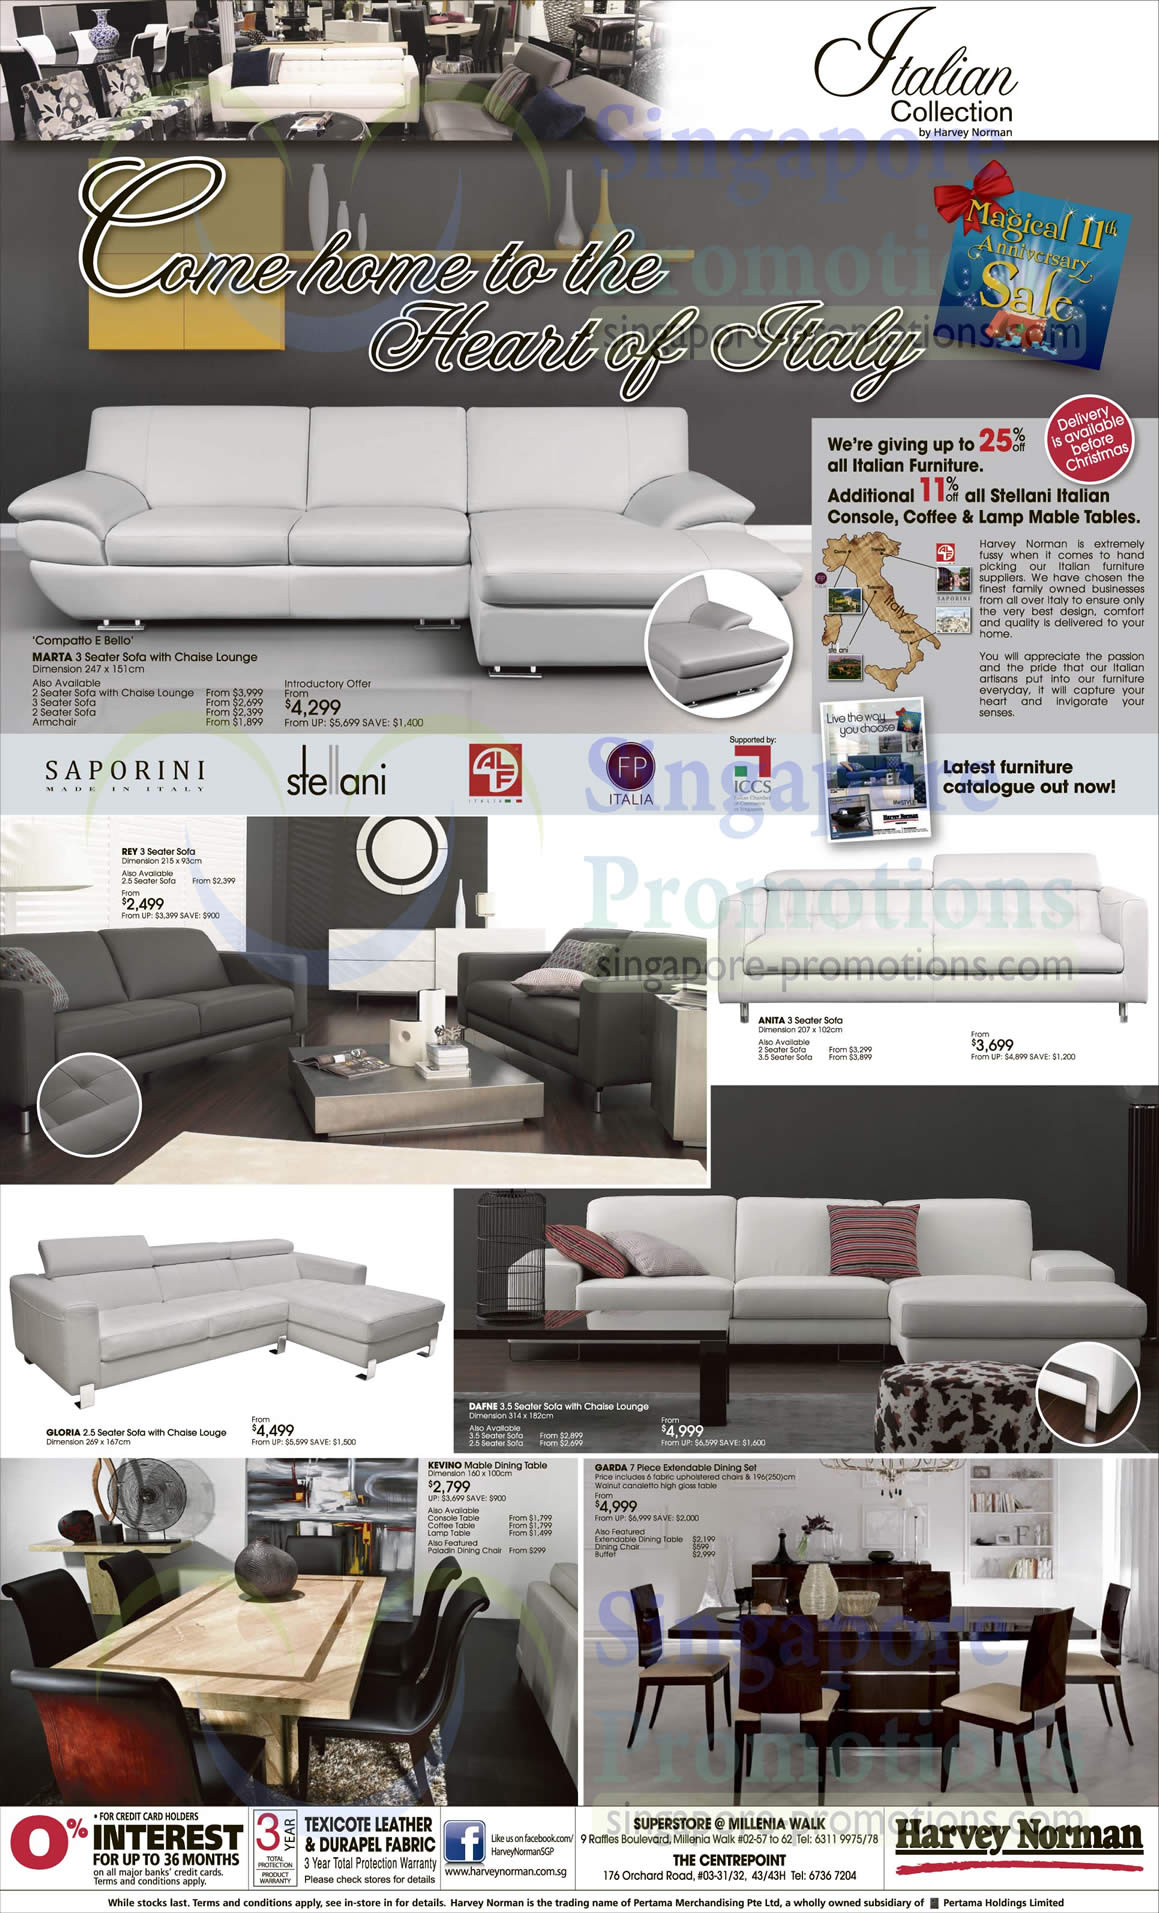 Sofa Sets, Dining Tables, Marta, Anita, Dafne, Kevino, Garda, Gloria, Kevino